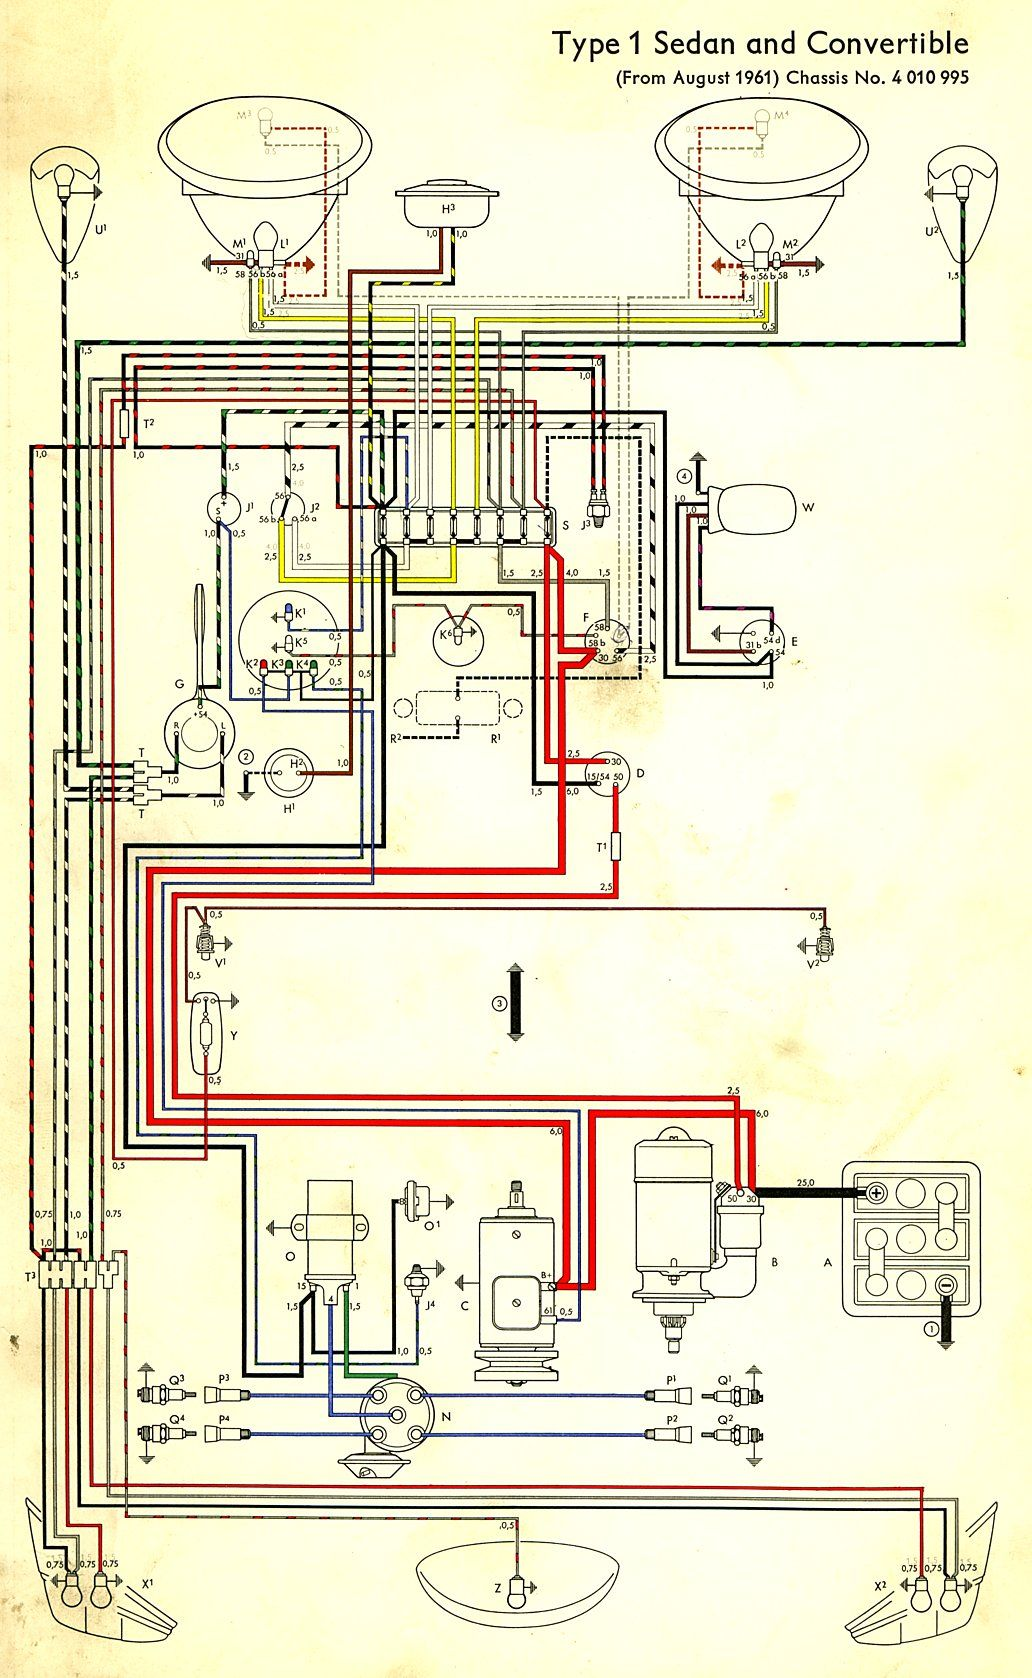 wiring diagram in color 1964 vw bug beetle convertible the samba rh pinterest com 1964 VW Beetle Colors 1964 VW Beetle Colors